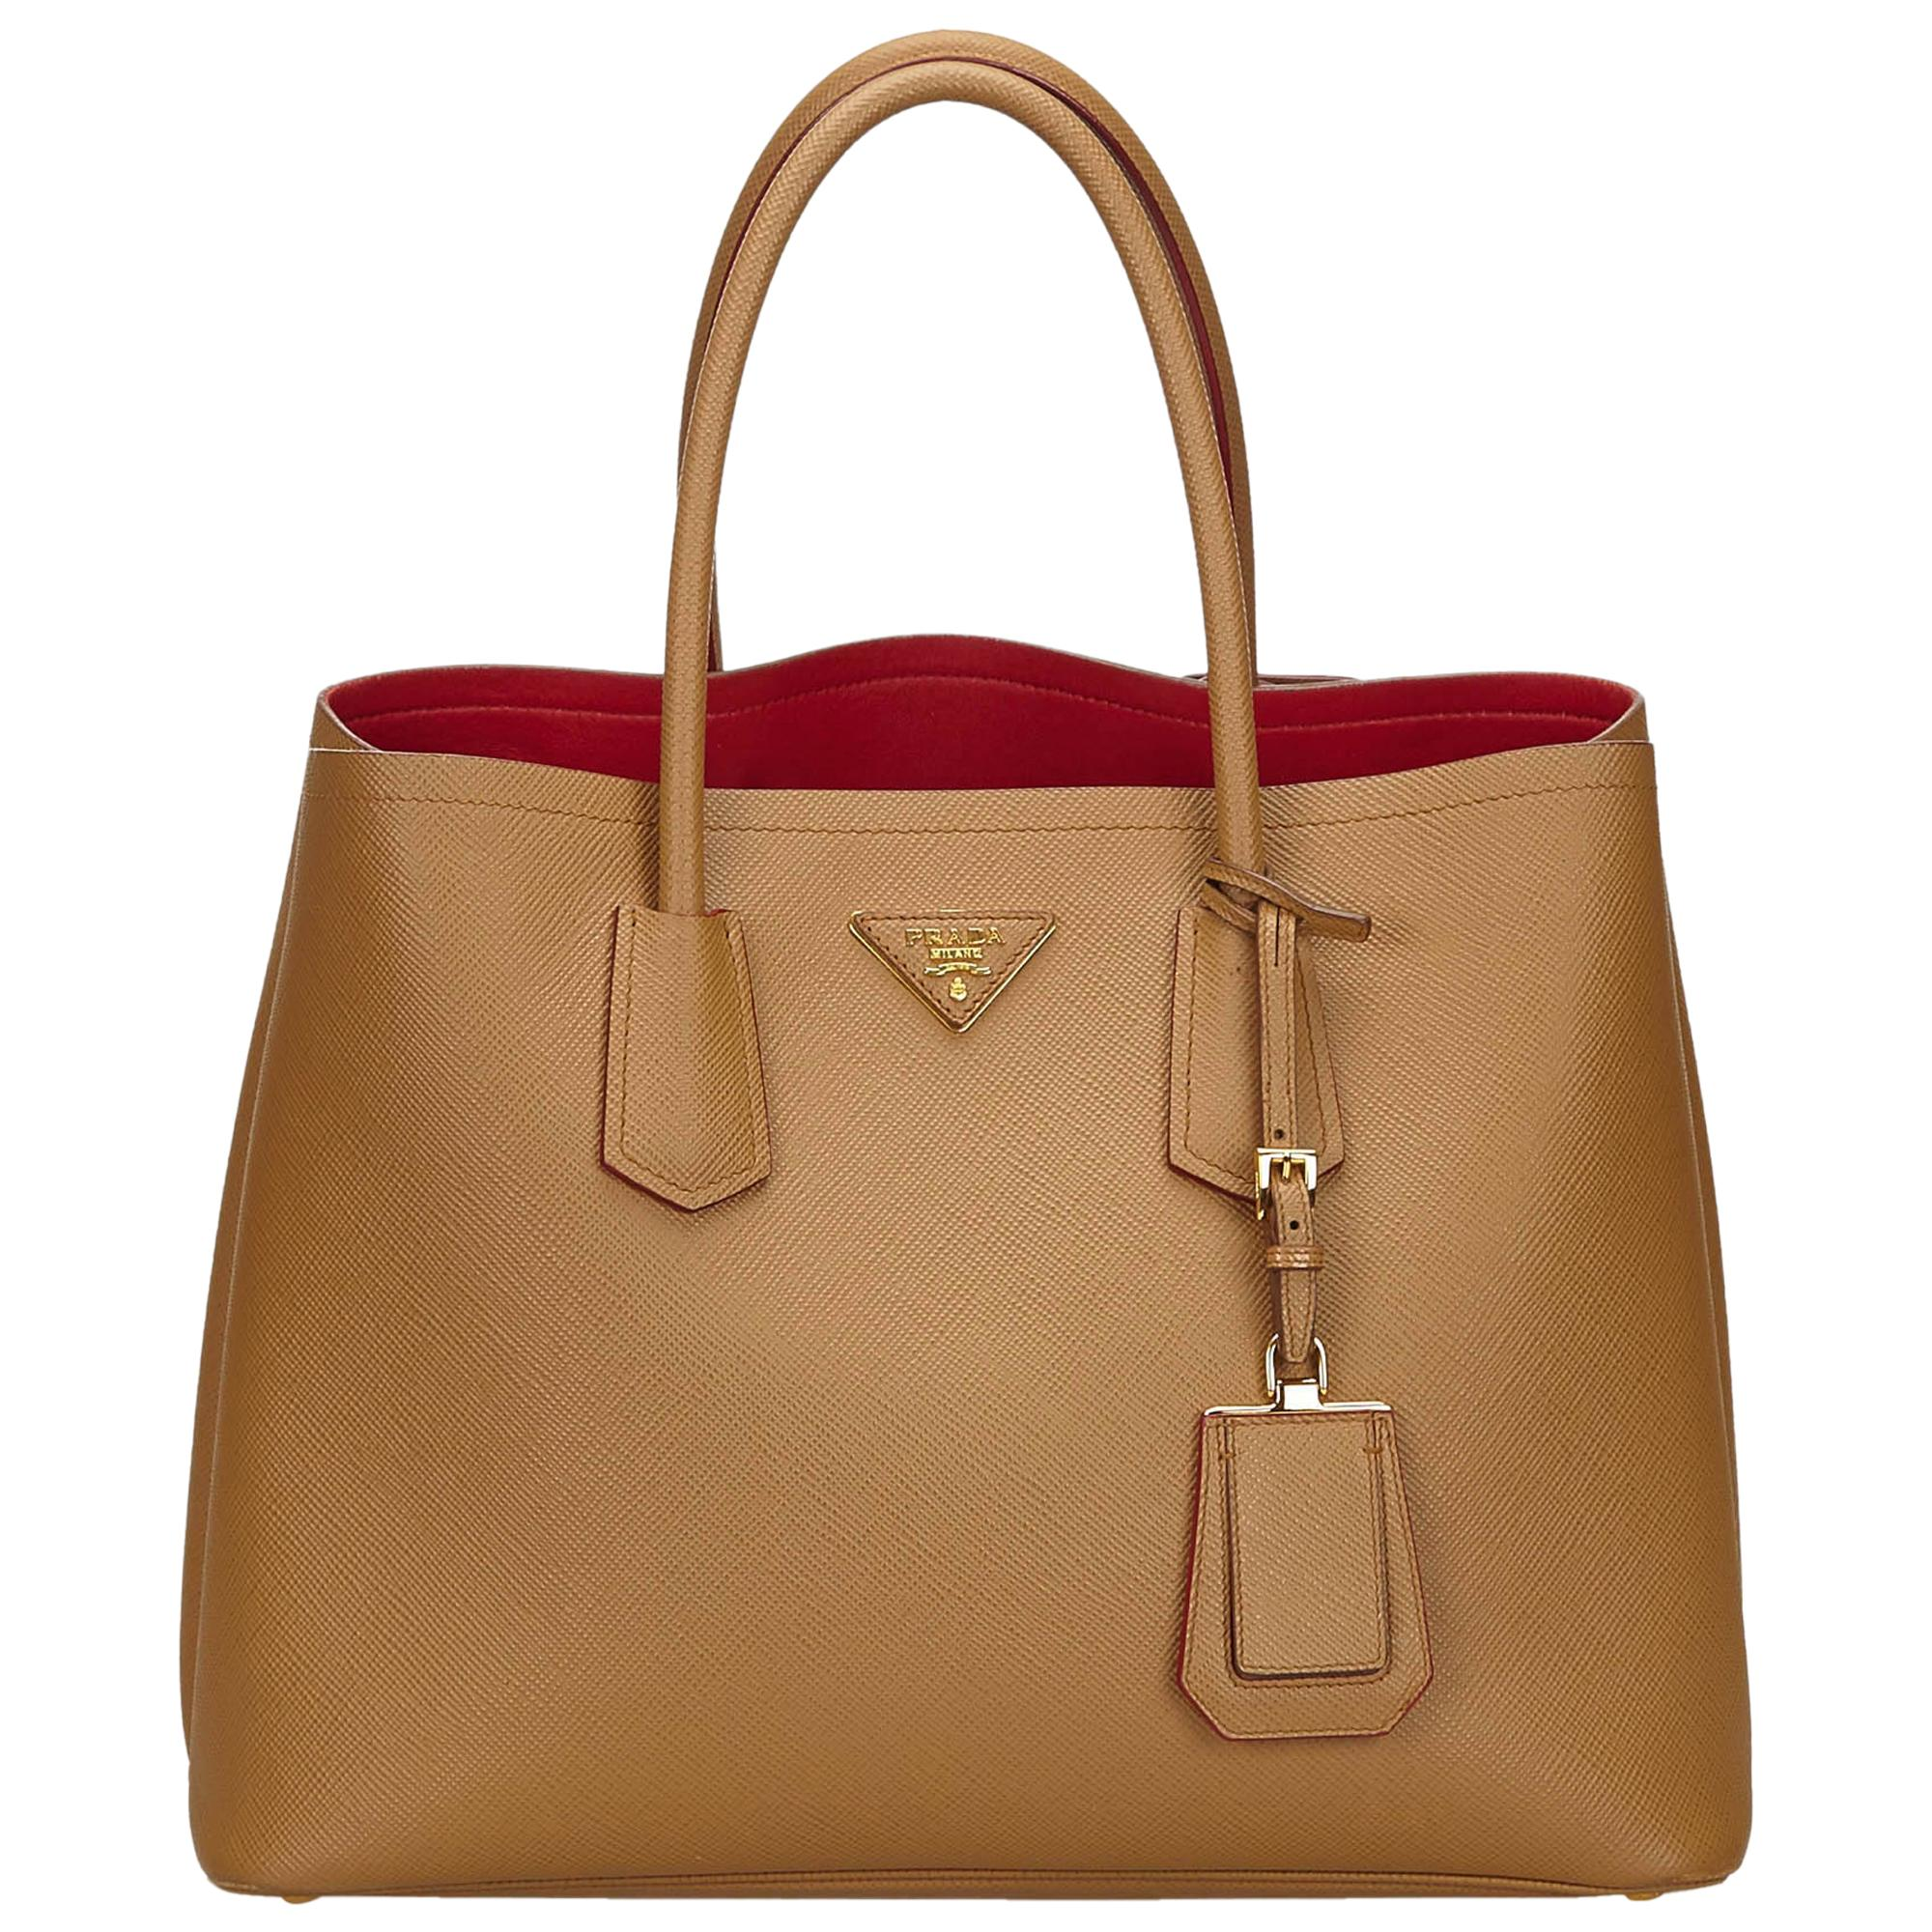 Prada Saffiano For Bag At Beige 1stdibs Sale Brown Leather X Tote wTOPukZXi